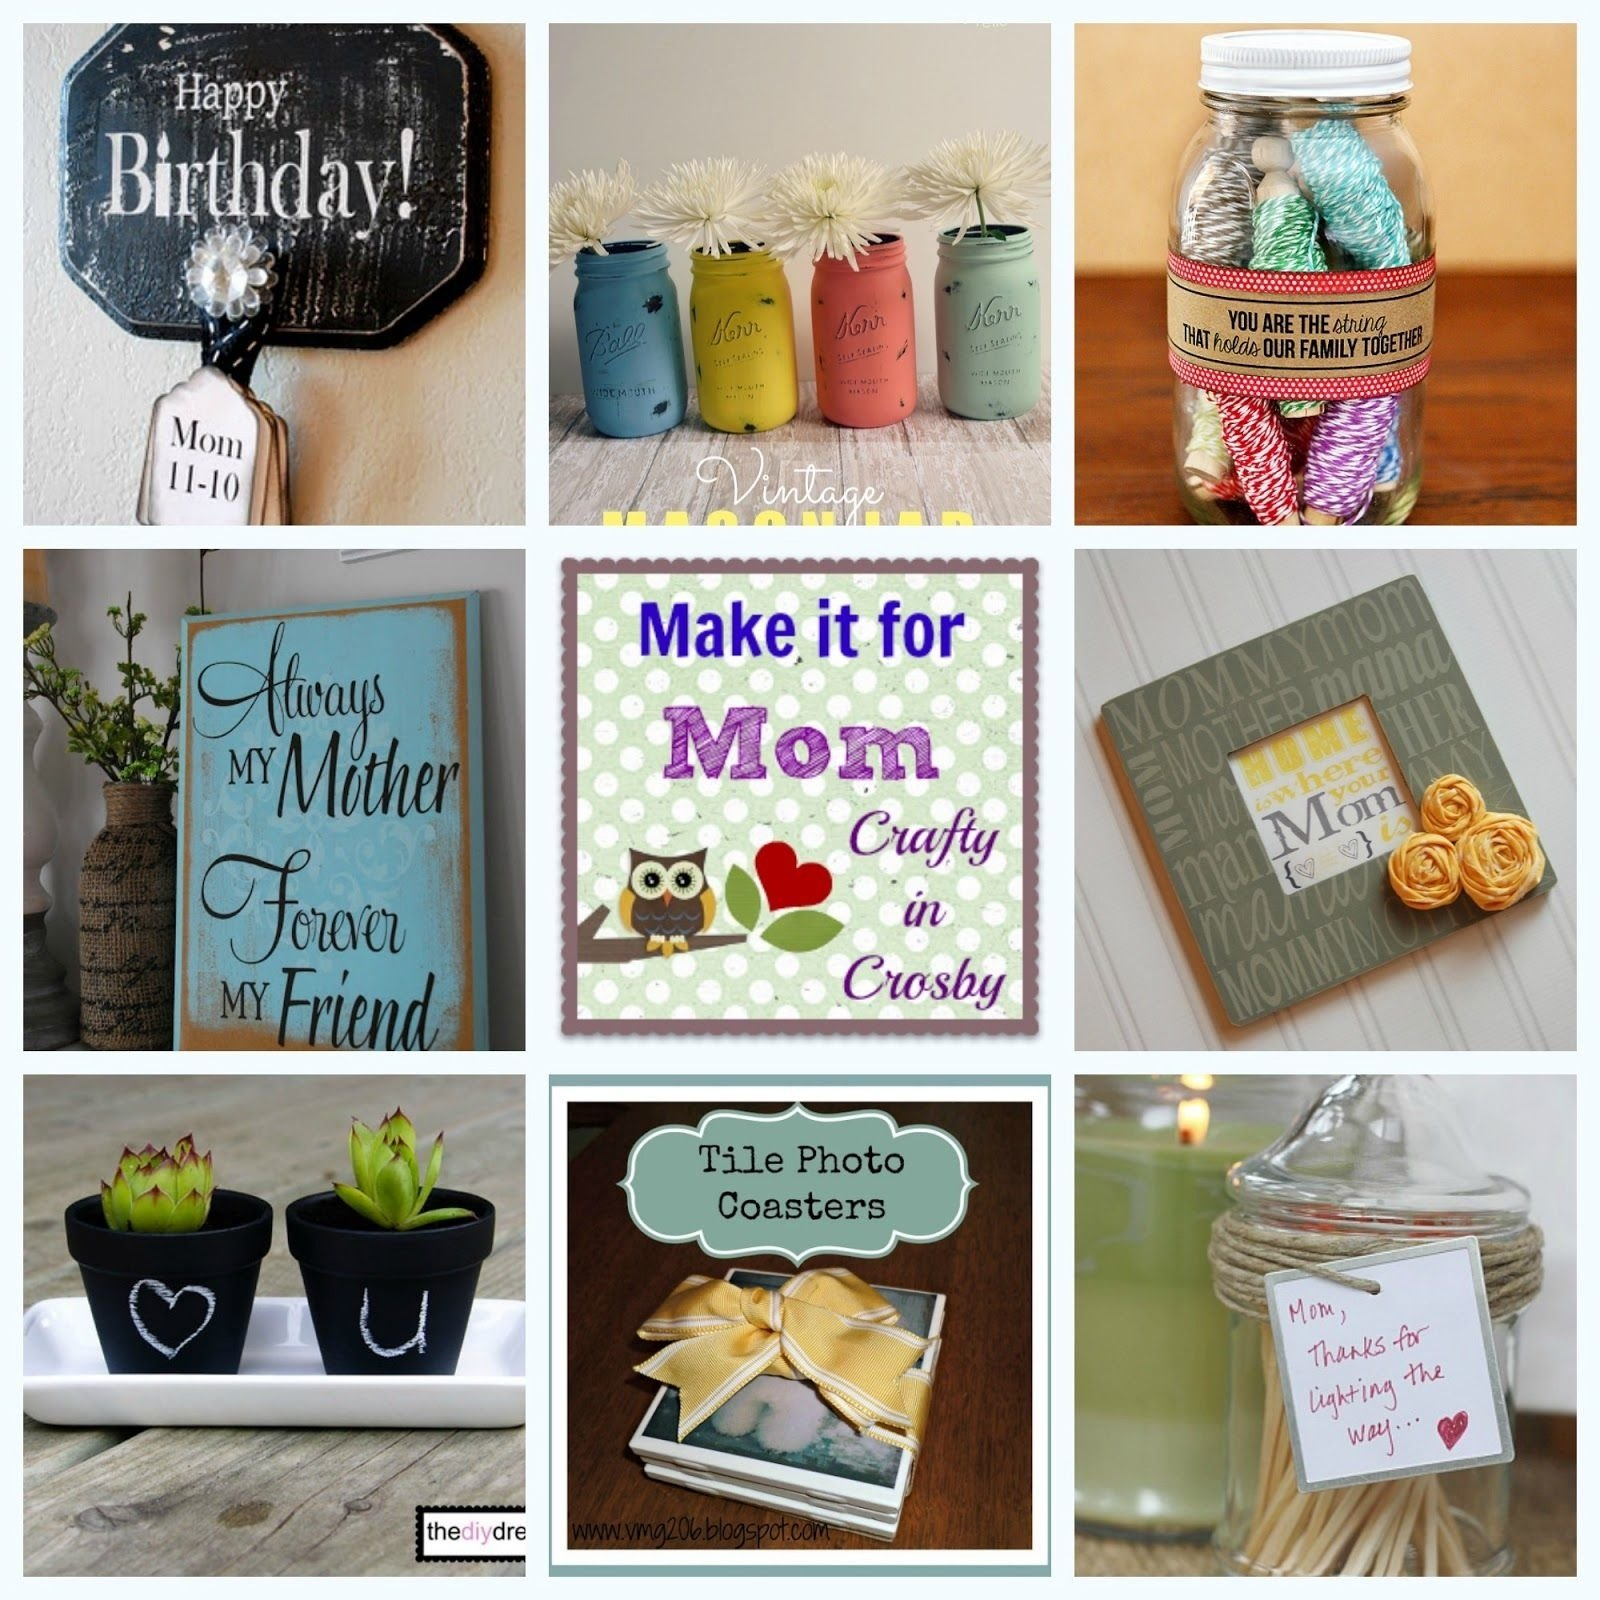 10 Stylish Birthday Gifts For Mom Ideas make it for momcrafty in crosby mothers fathers day 1 2020